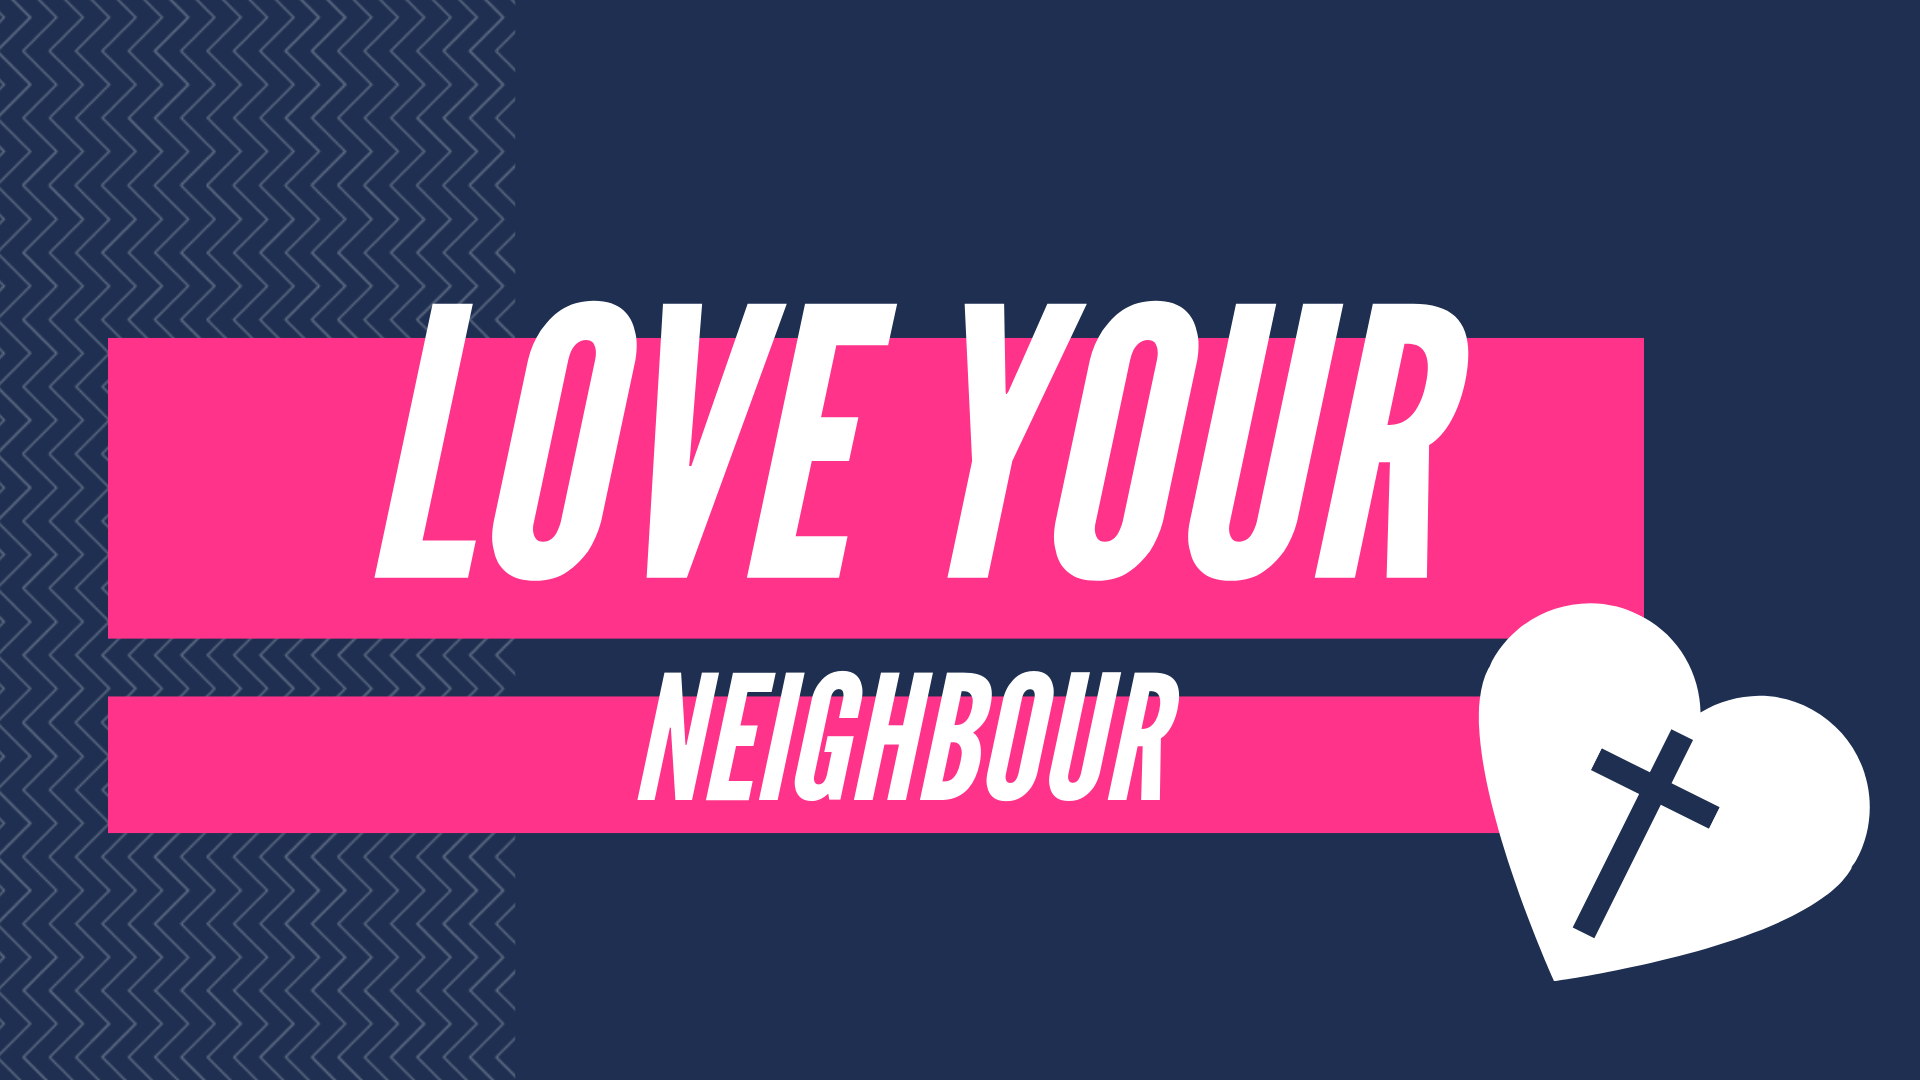 Loving our Neighbour